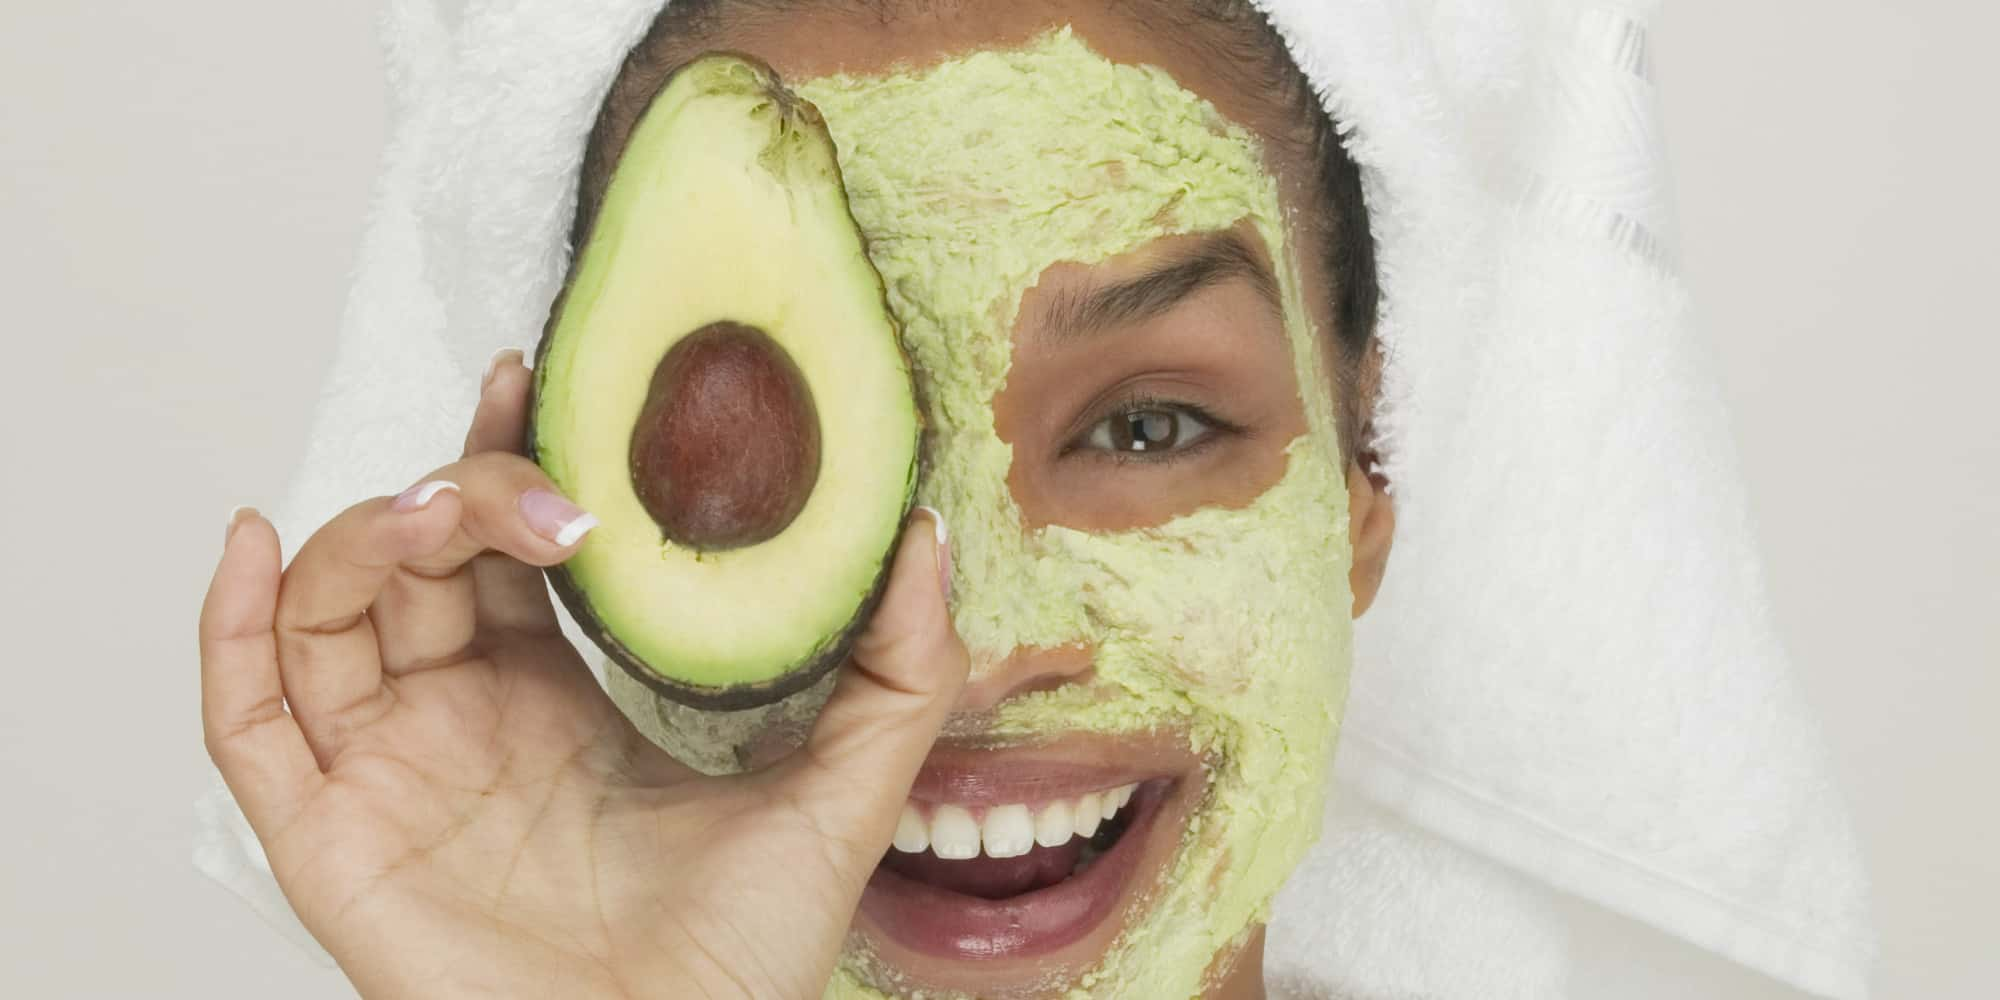 How to Make Your Own Honey and Avocado DIY Face Mask